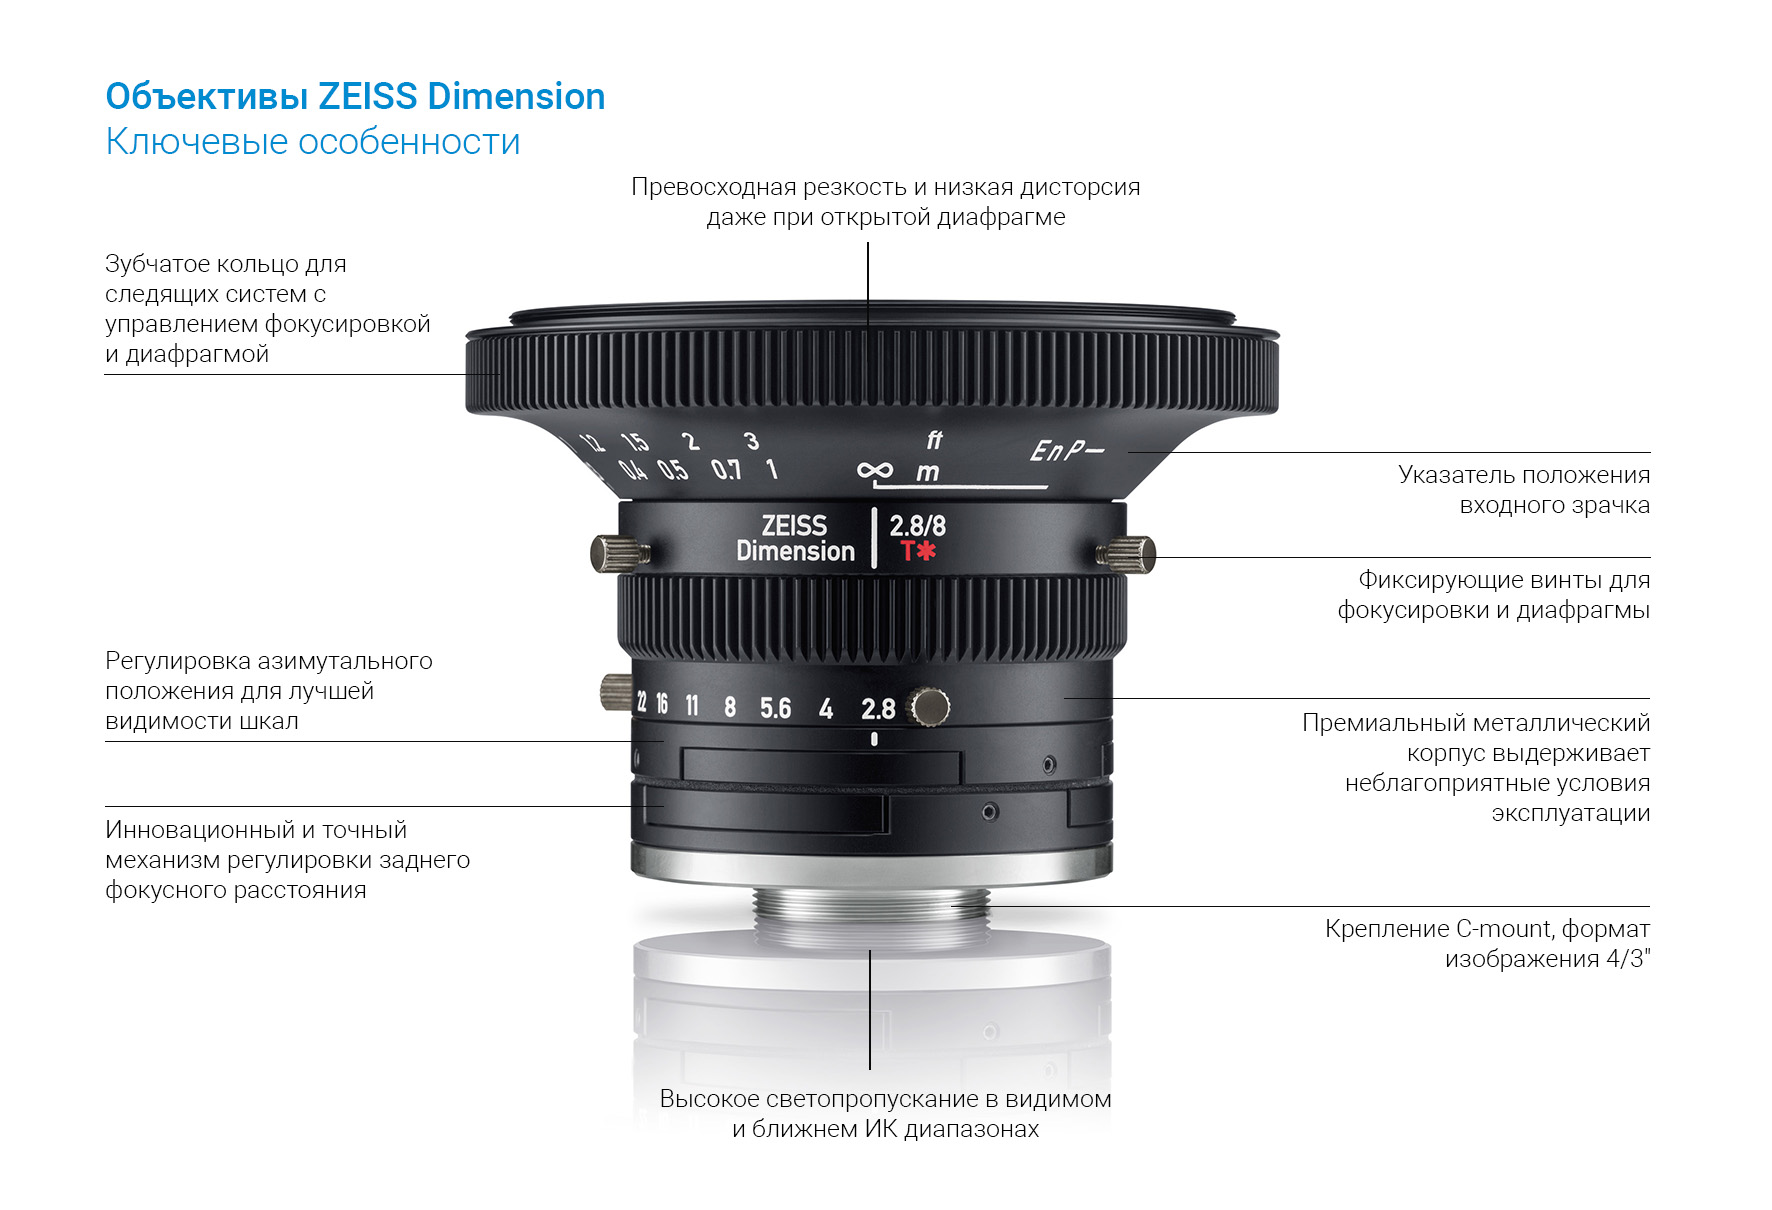 Объективы ZEISS Dimension